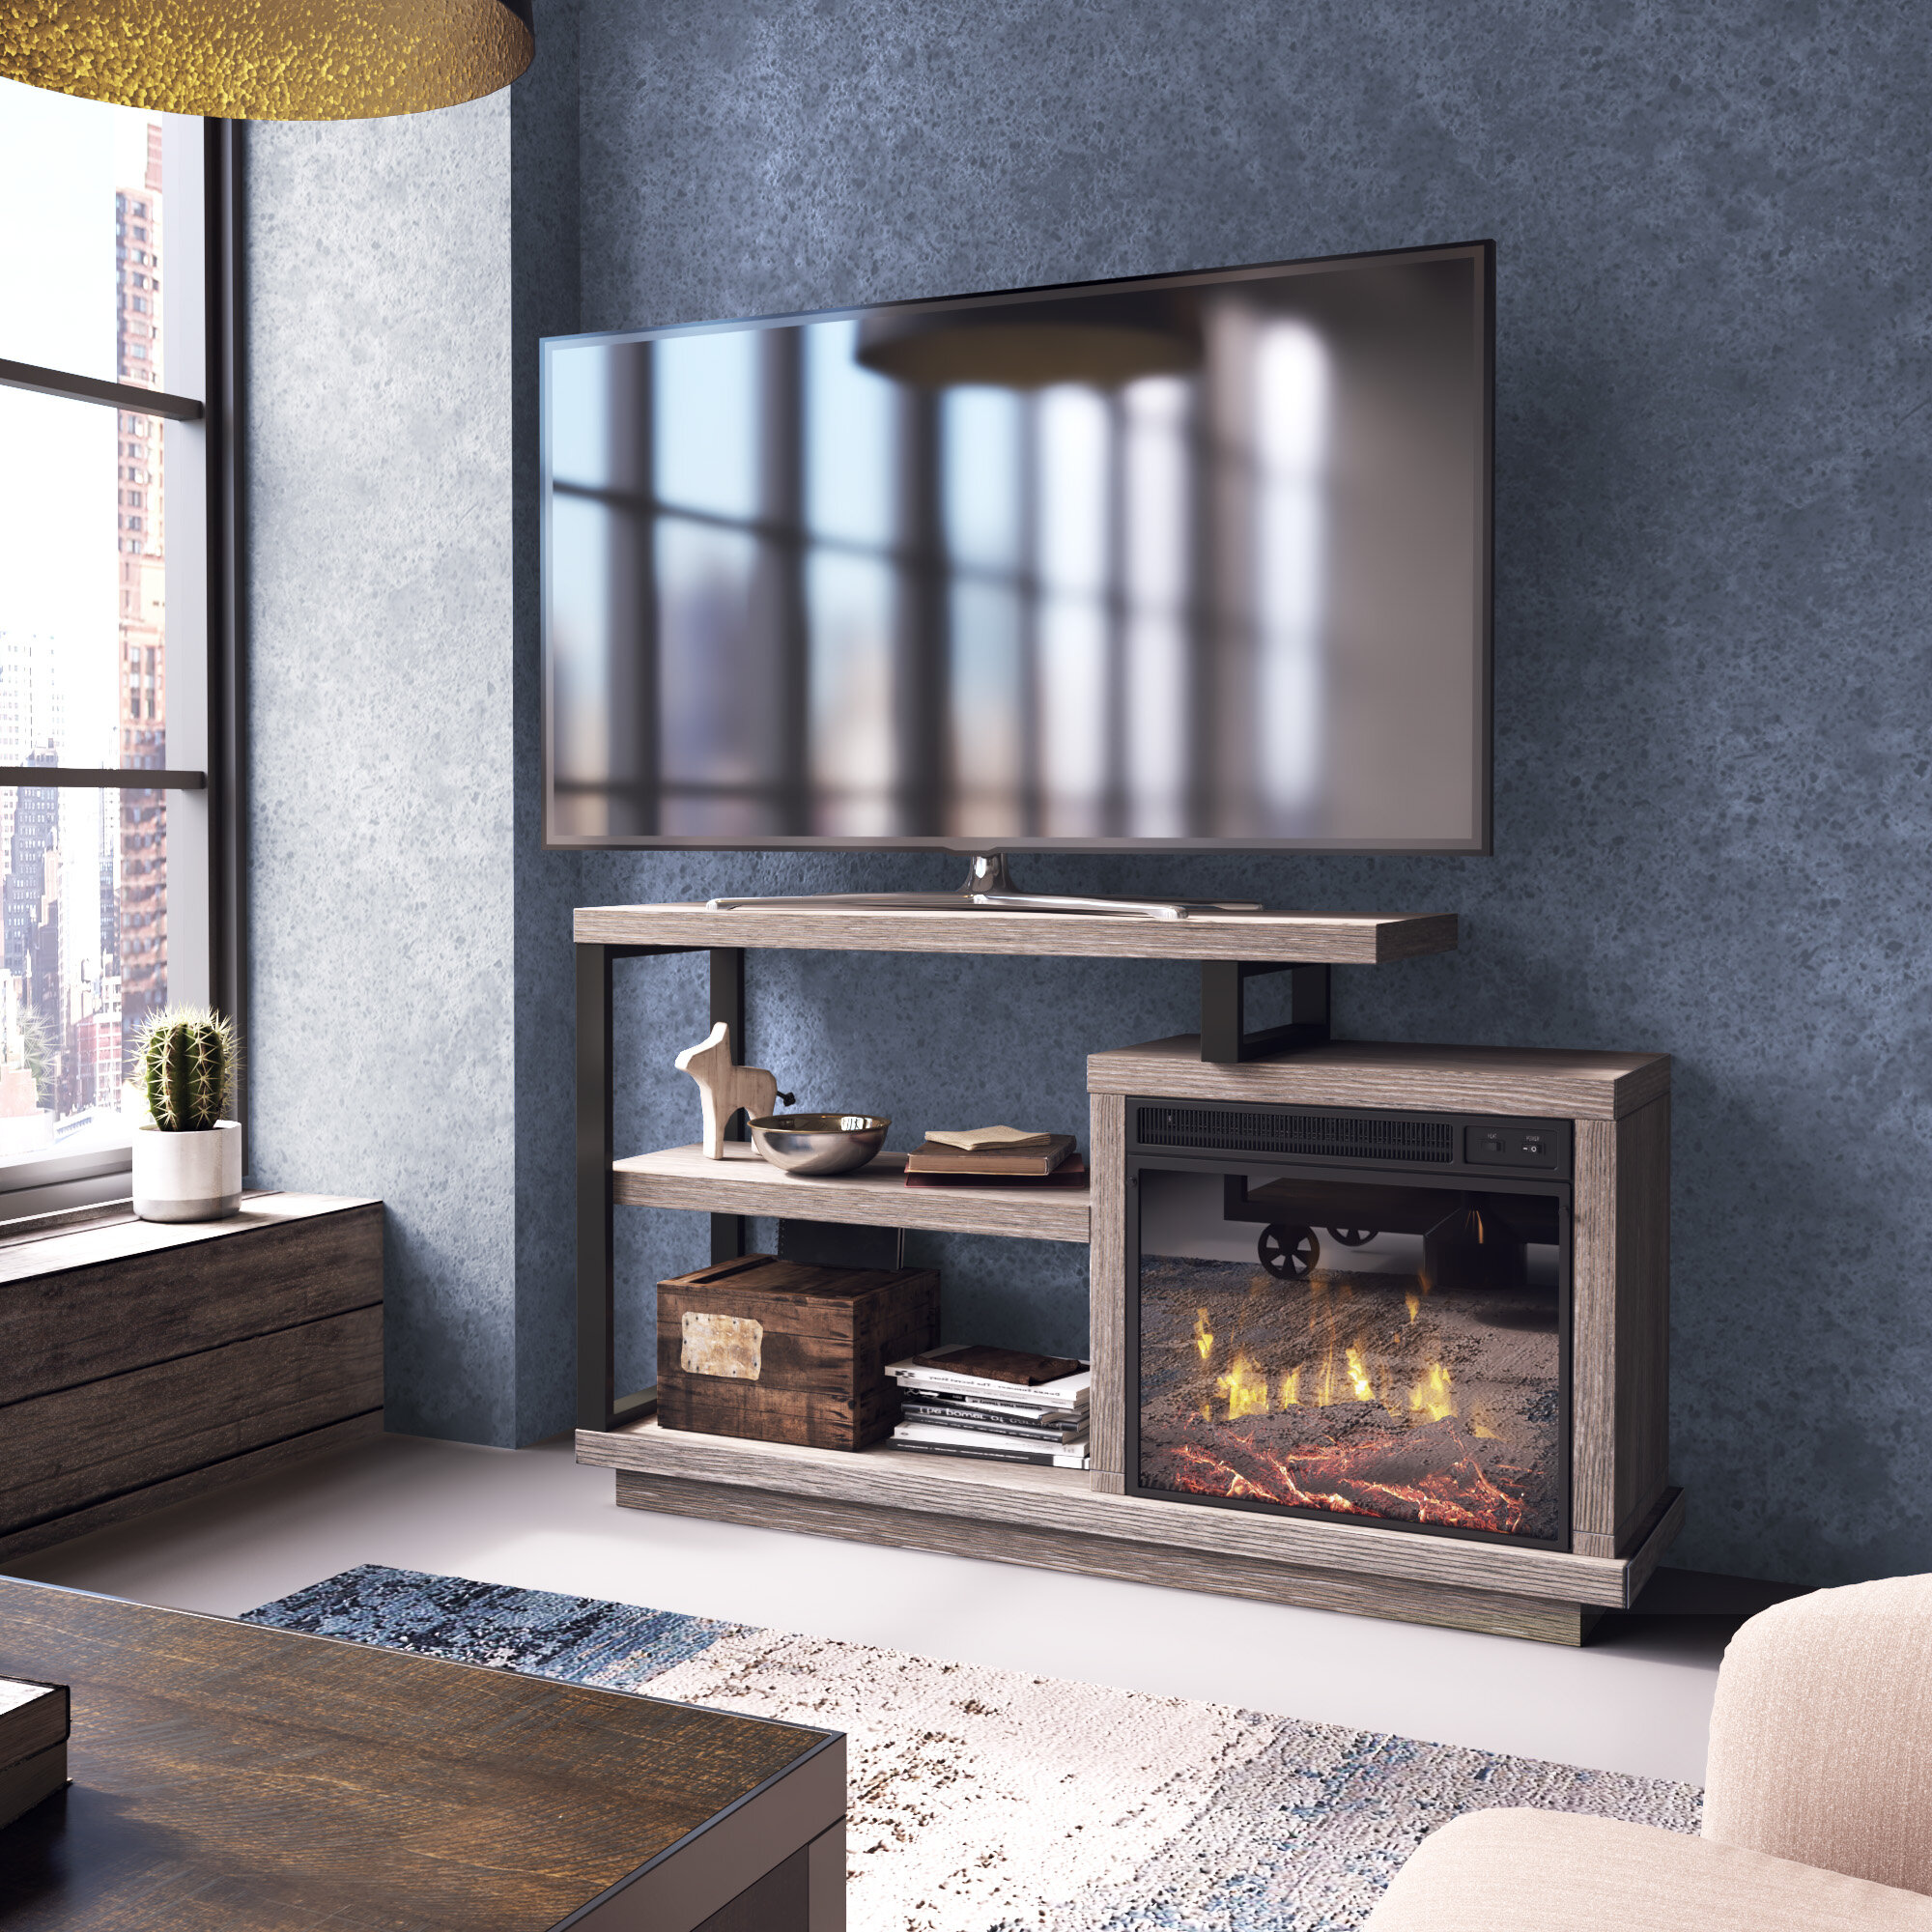 Louann Tv Stand For Tvs Up To 55 Inches With Electric Fireplace Included